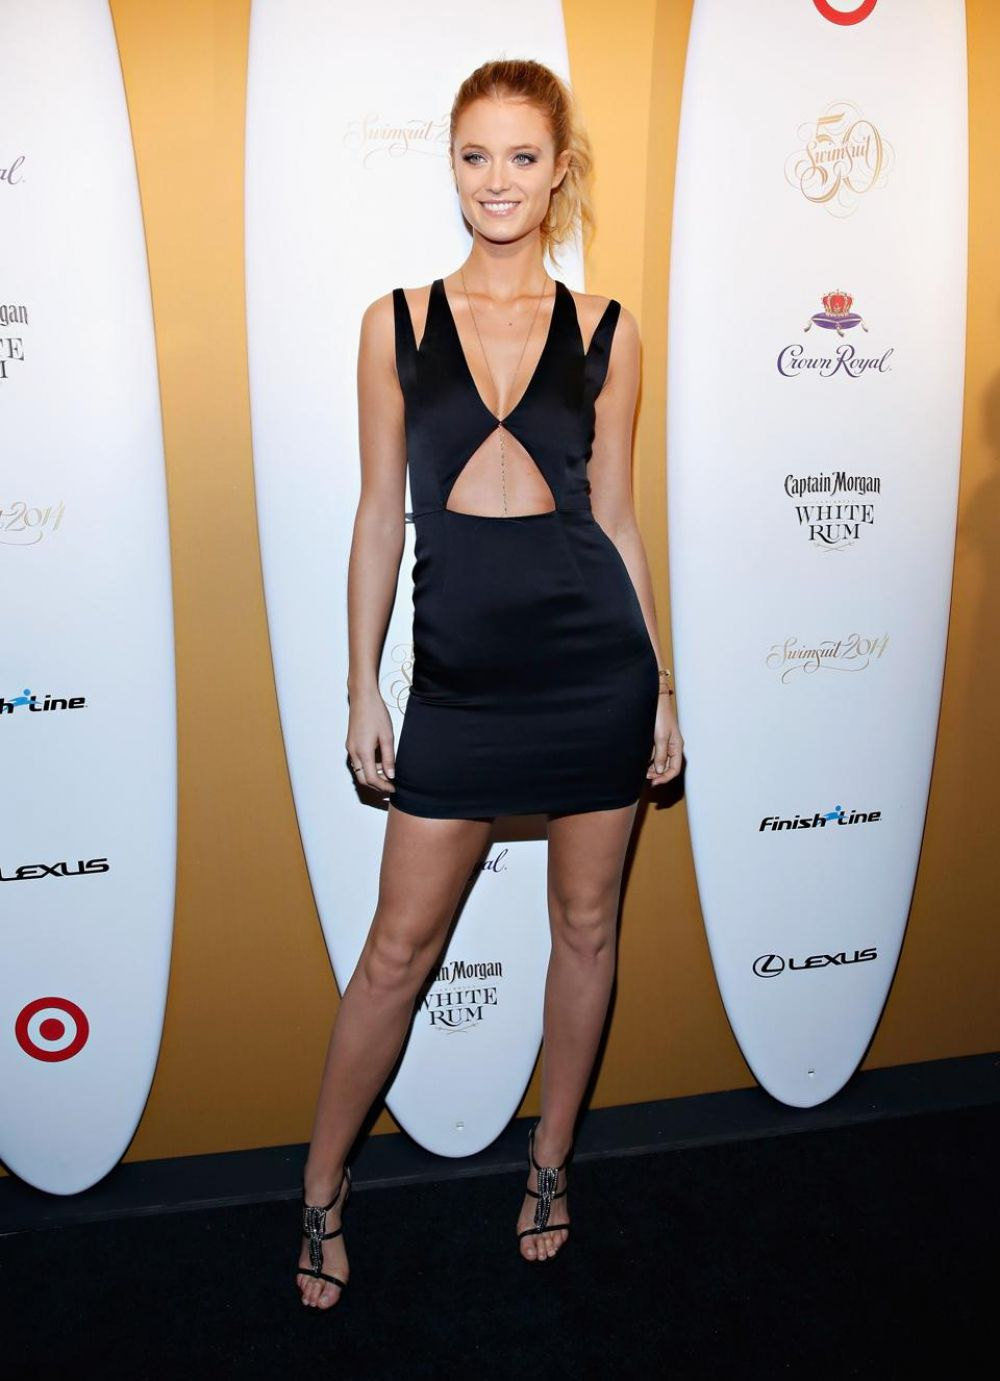 Kate Bock At Sports Illustrated Swimsuit 50 Years Of Swim Celebration